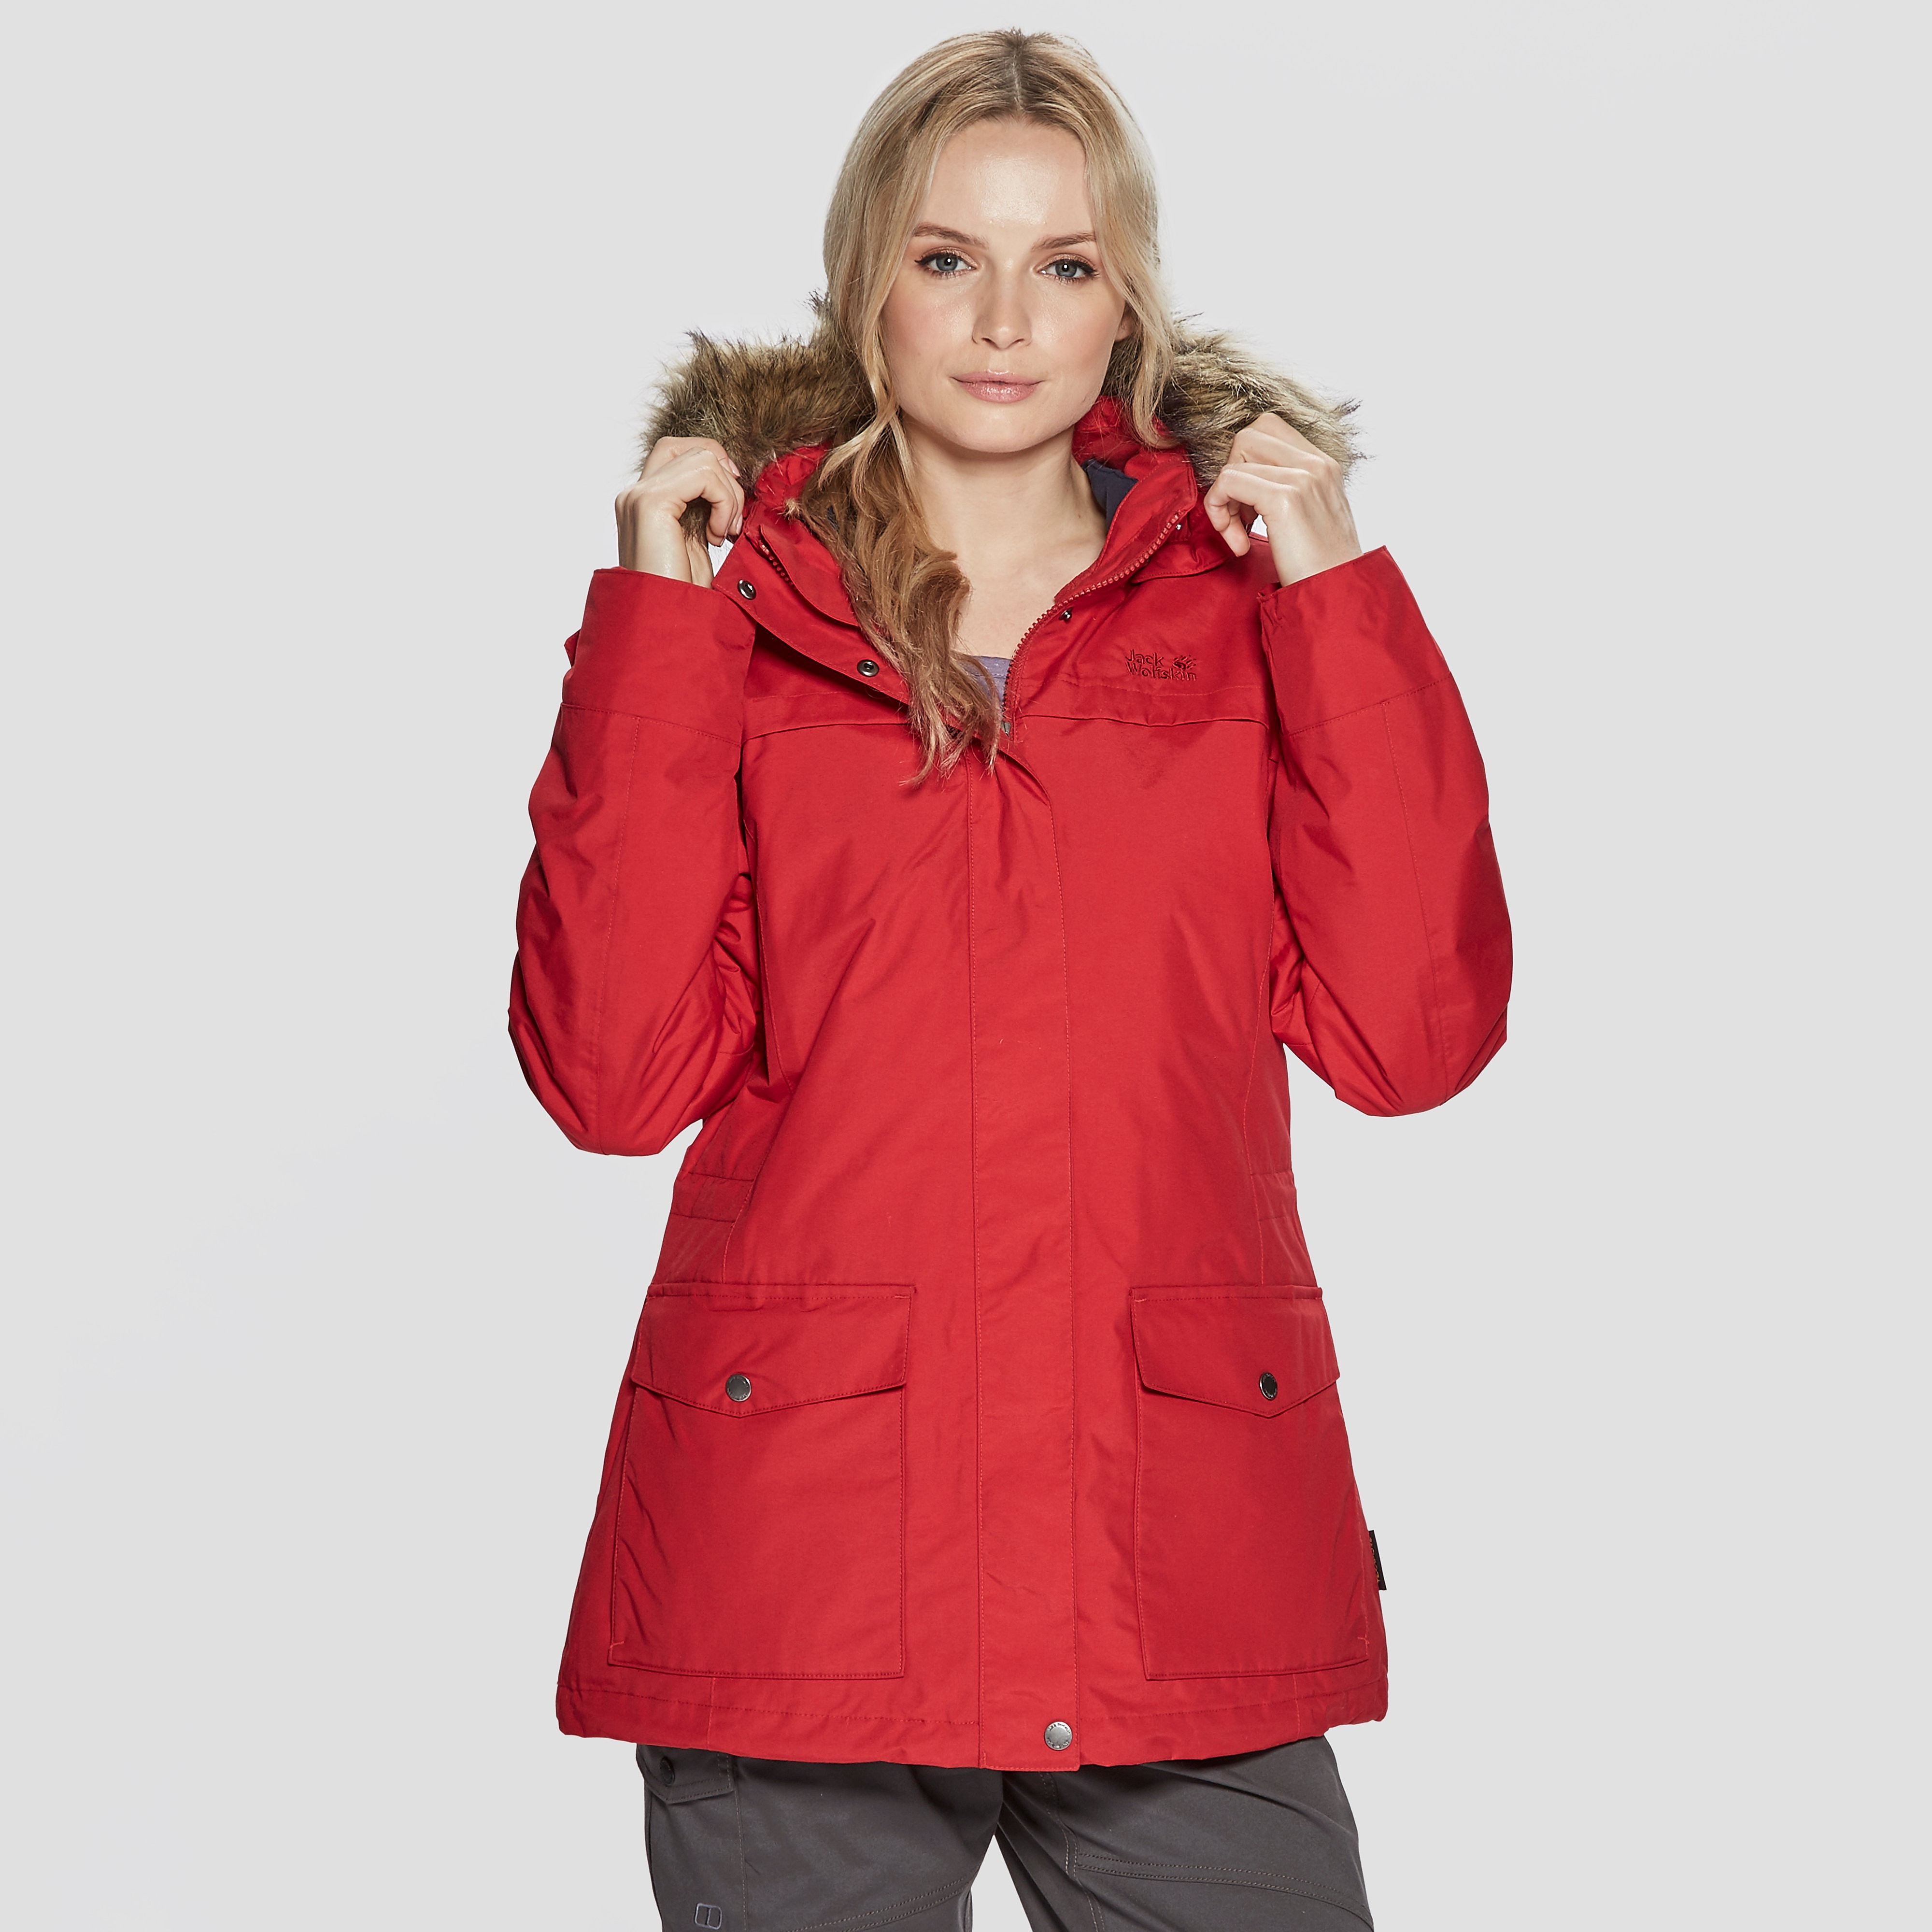 Jack Wolfskin Rocky Shore 3 in 1 Women's Parka